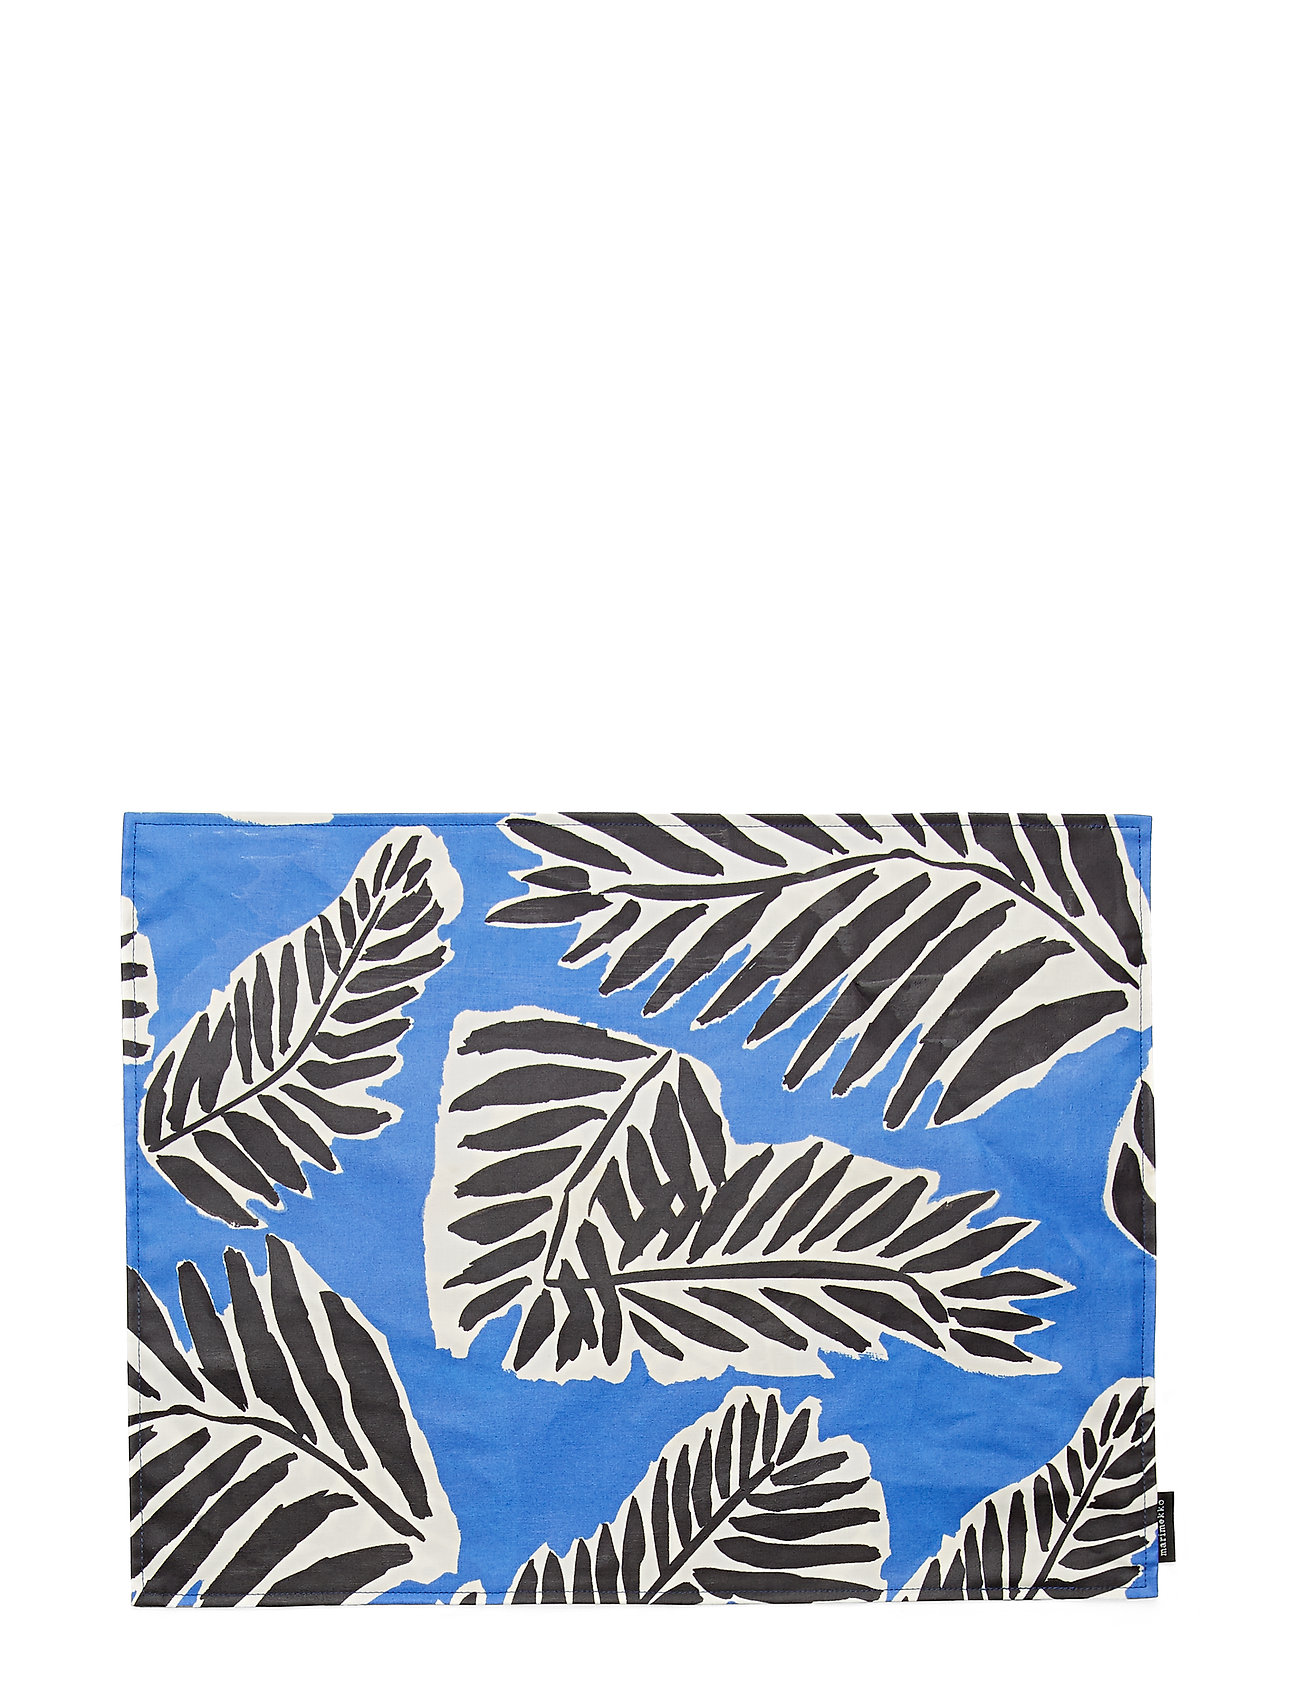 Marimekko Home BABASSU ACRYLIC COTTON PLACEMAT - BLUE, BLACK, OFF-WHITE